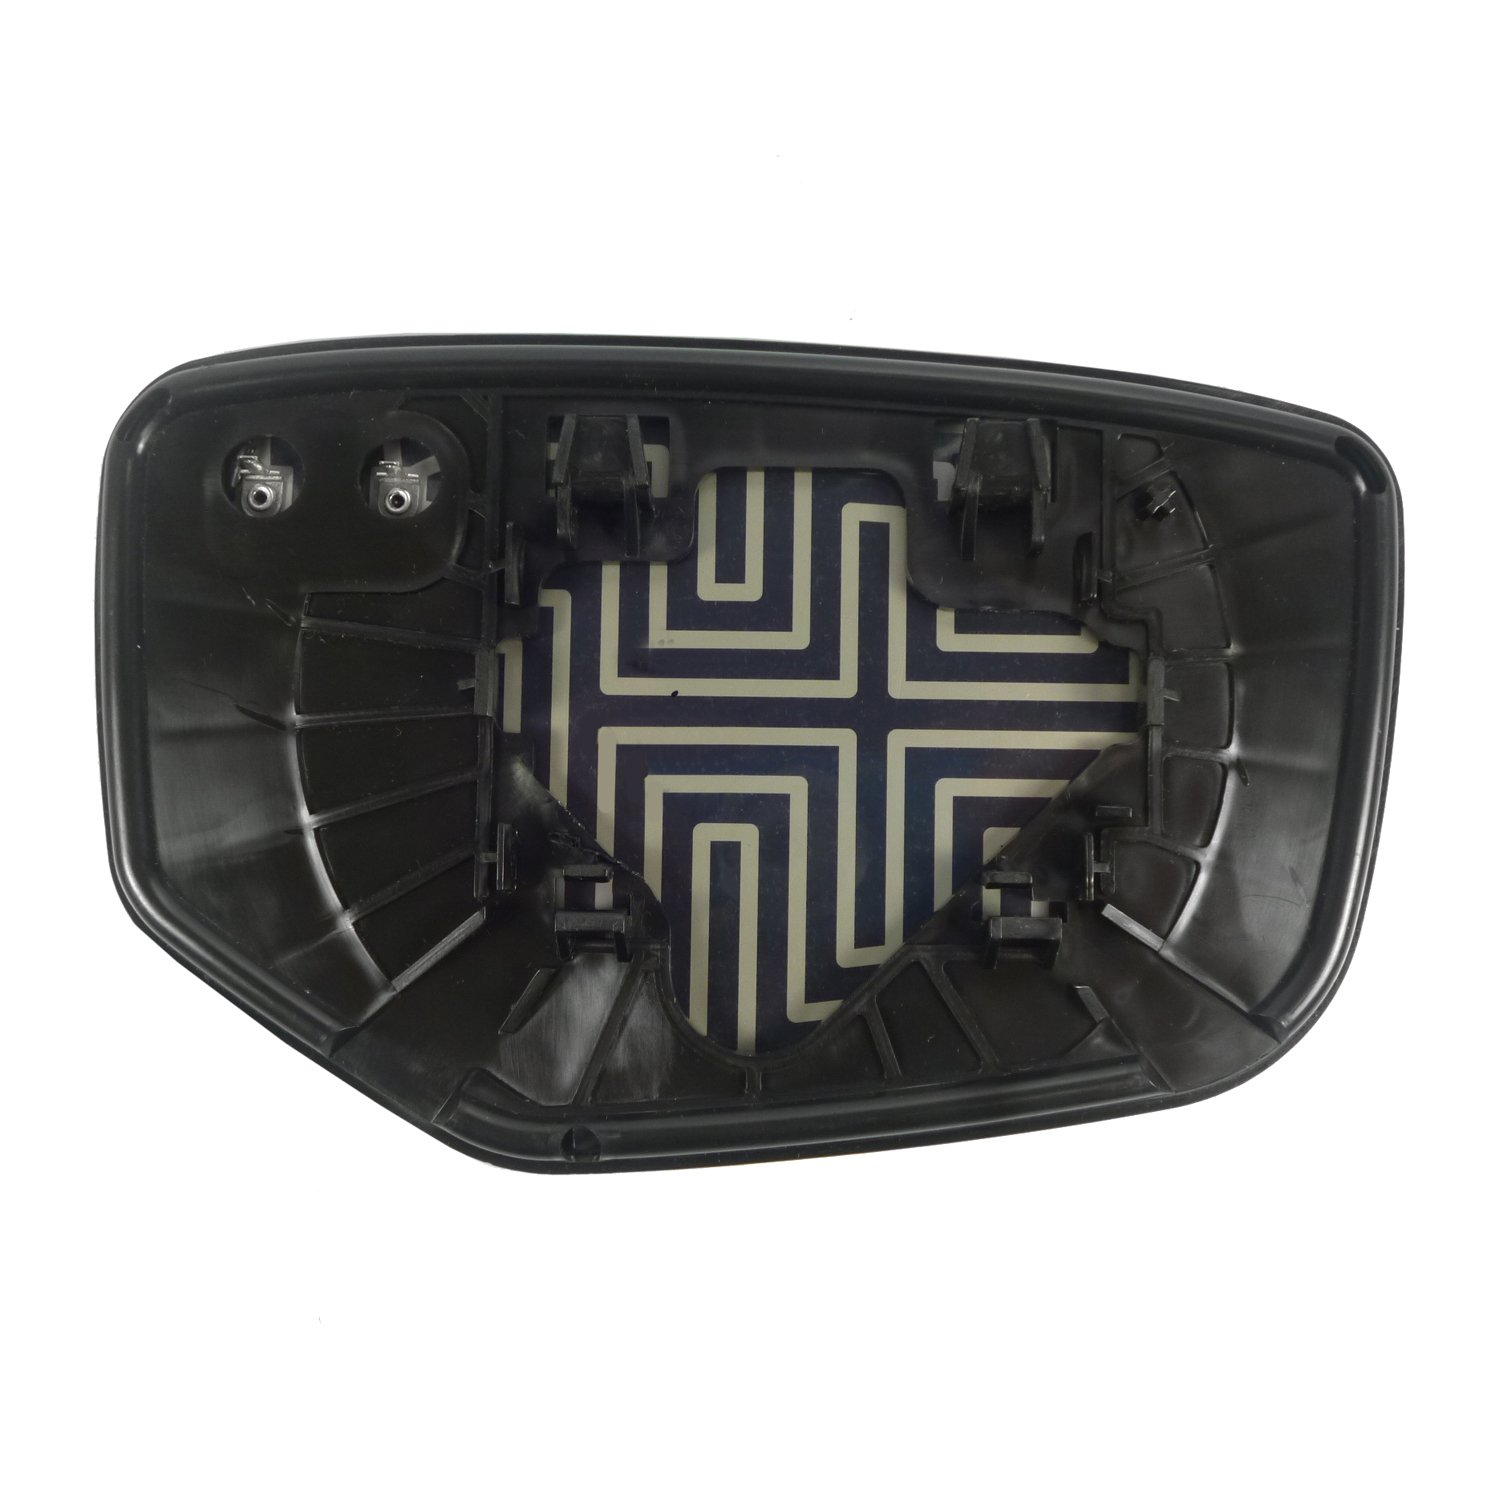 Fit System 33215 Honda Accord Left Side Heated Power Replacement Mirror Glass with Backing Plate